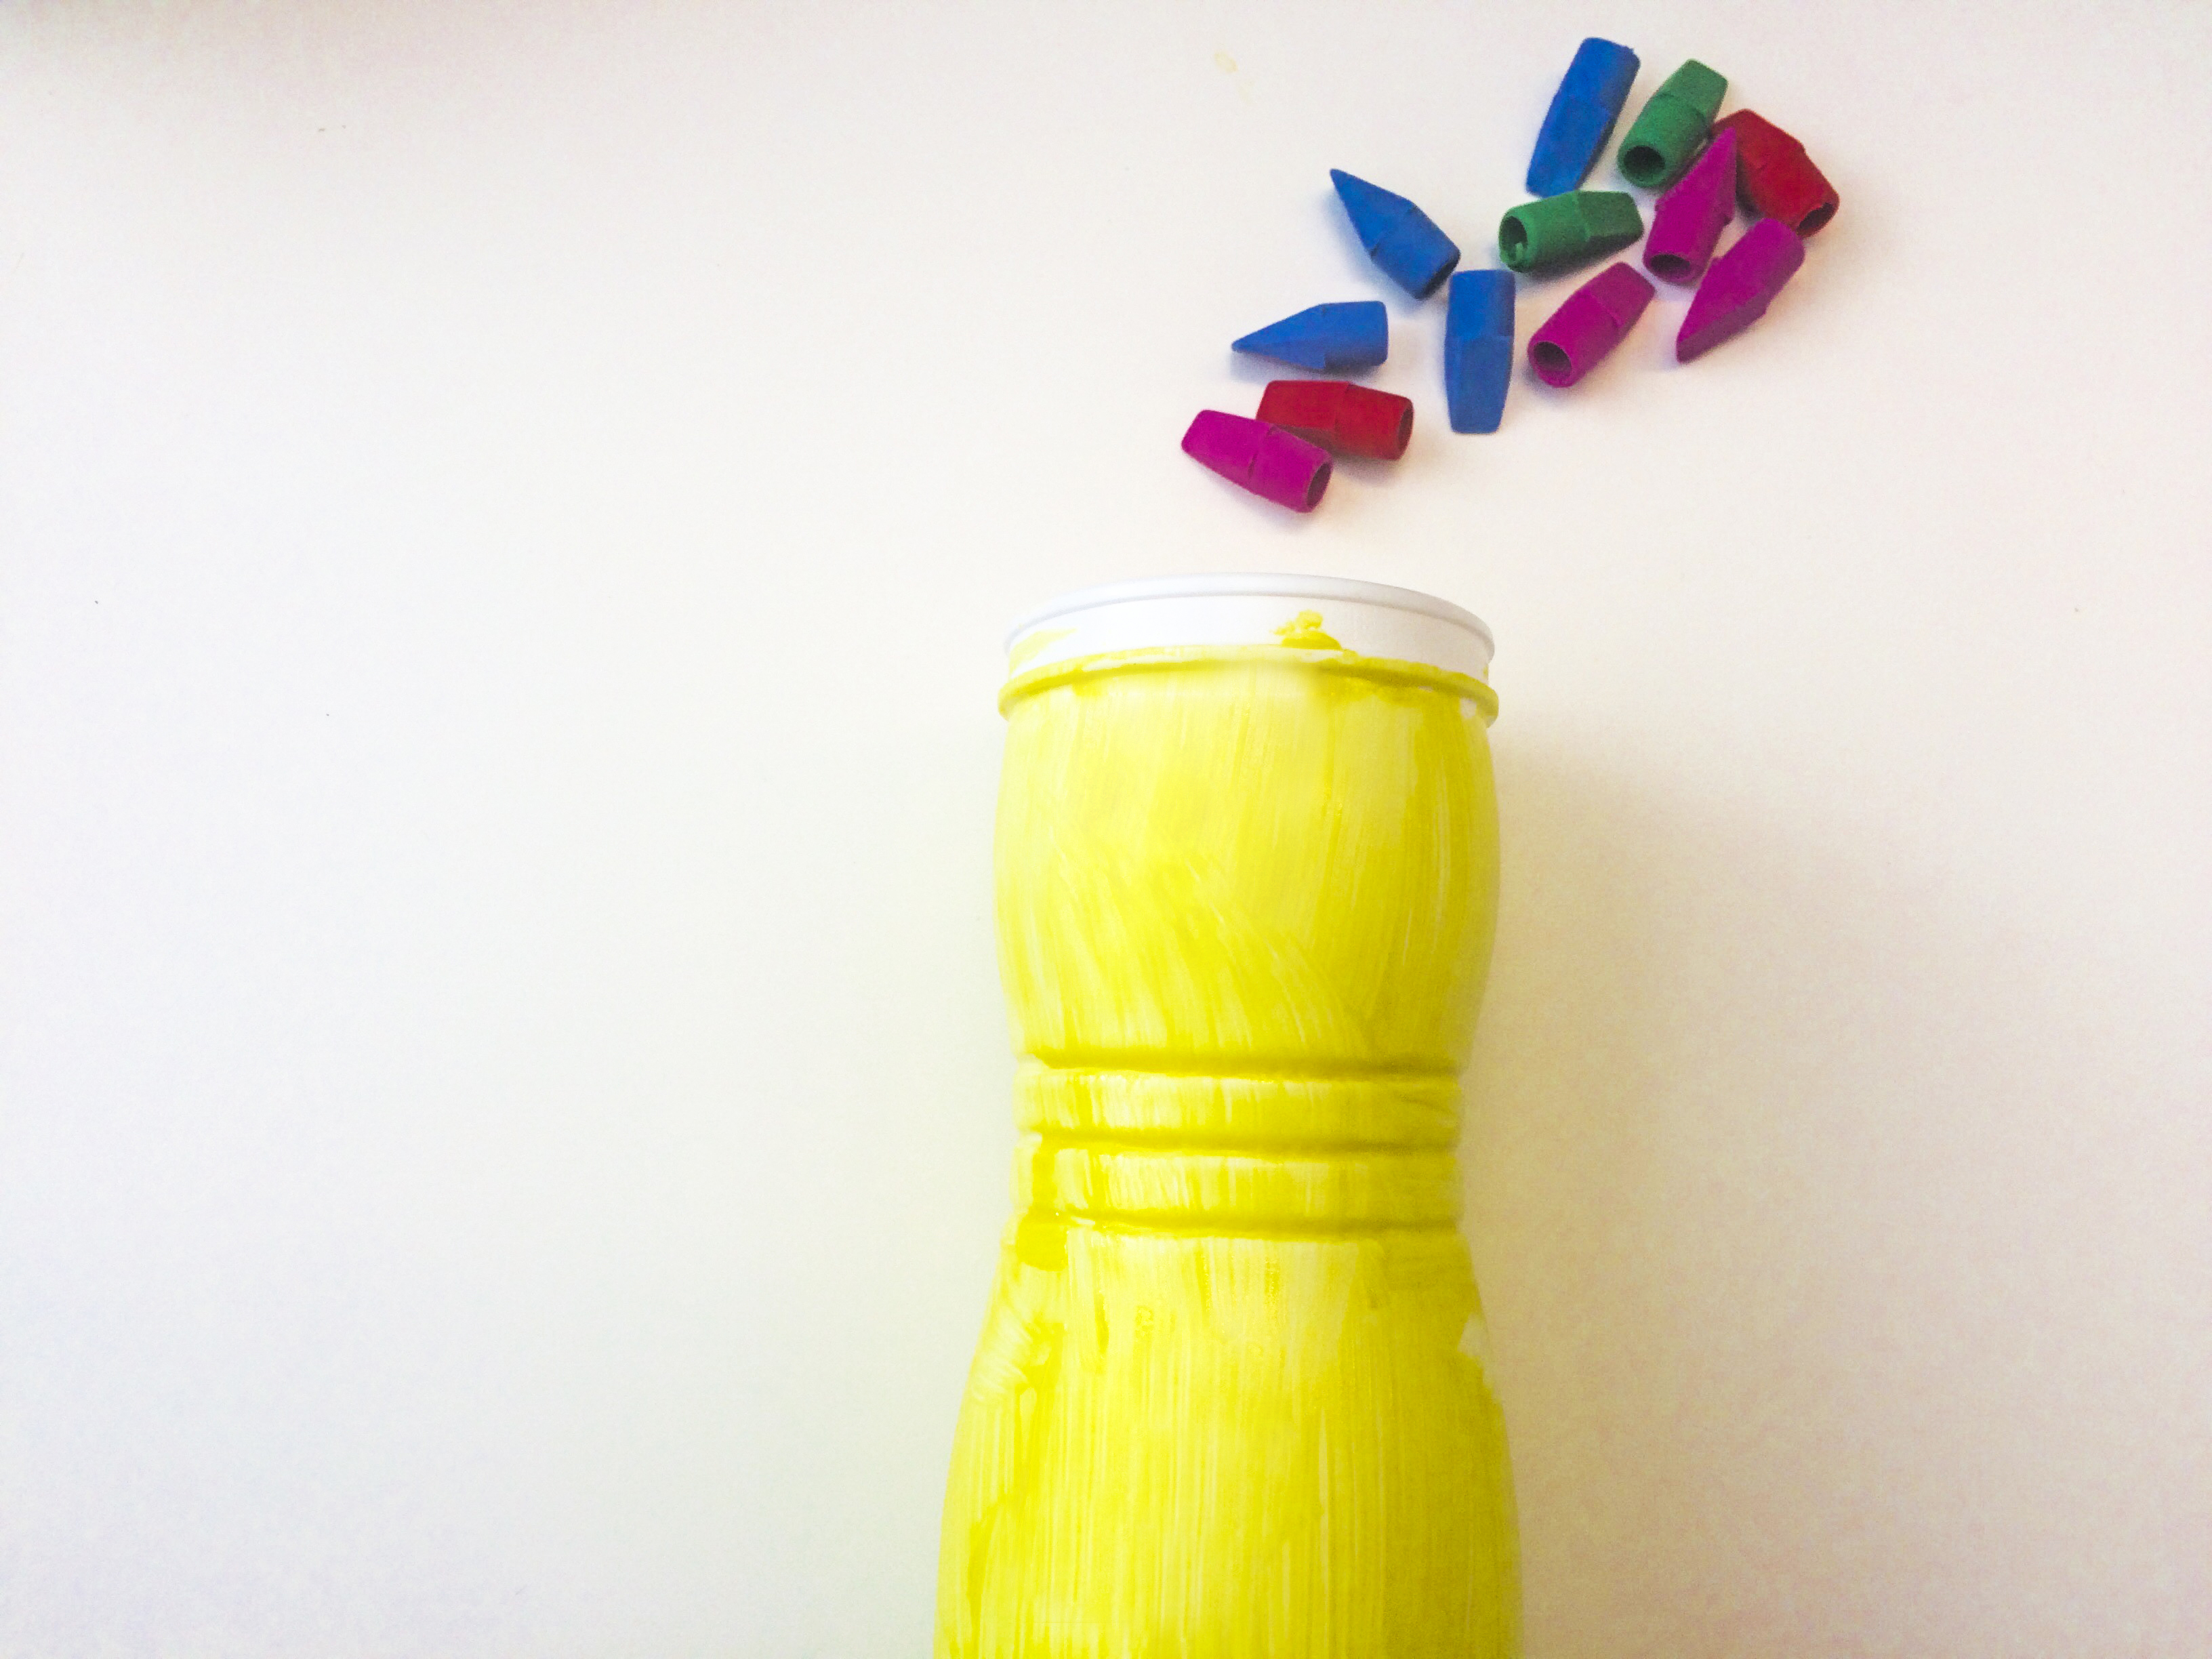 Yellow painted bottle with red, blue, and green erasers on top.